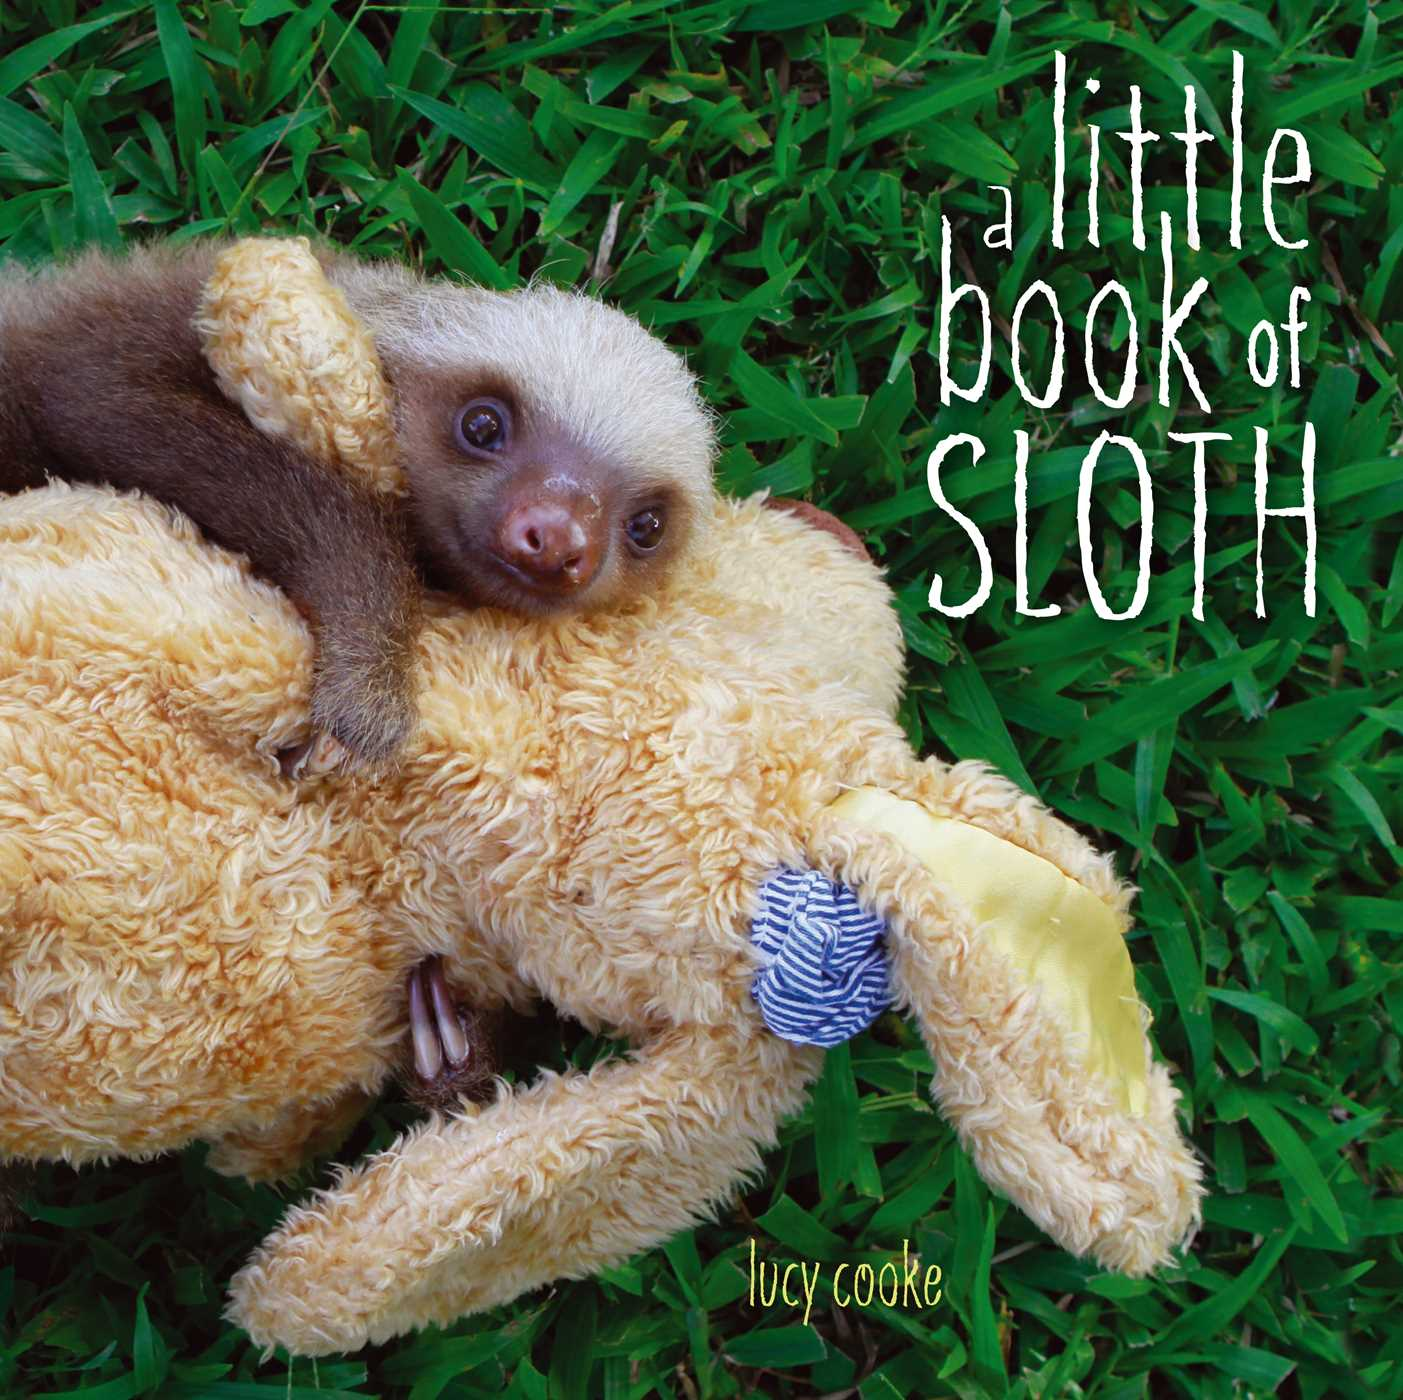 A little book of sloth 9781442445581 hr